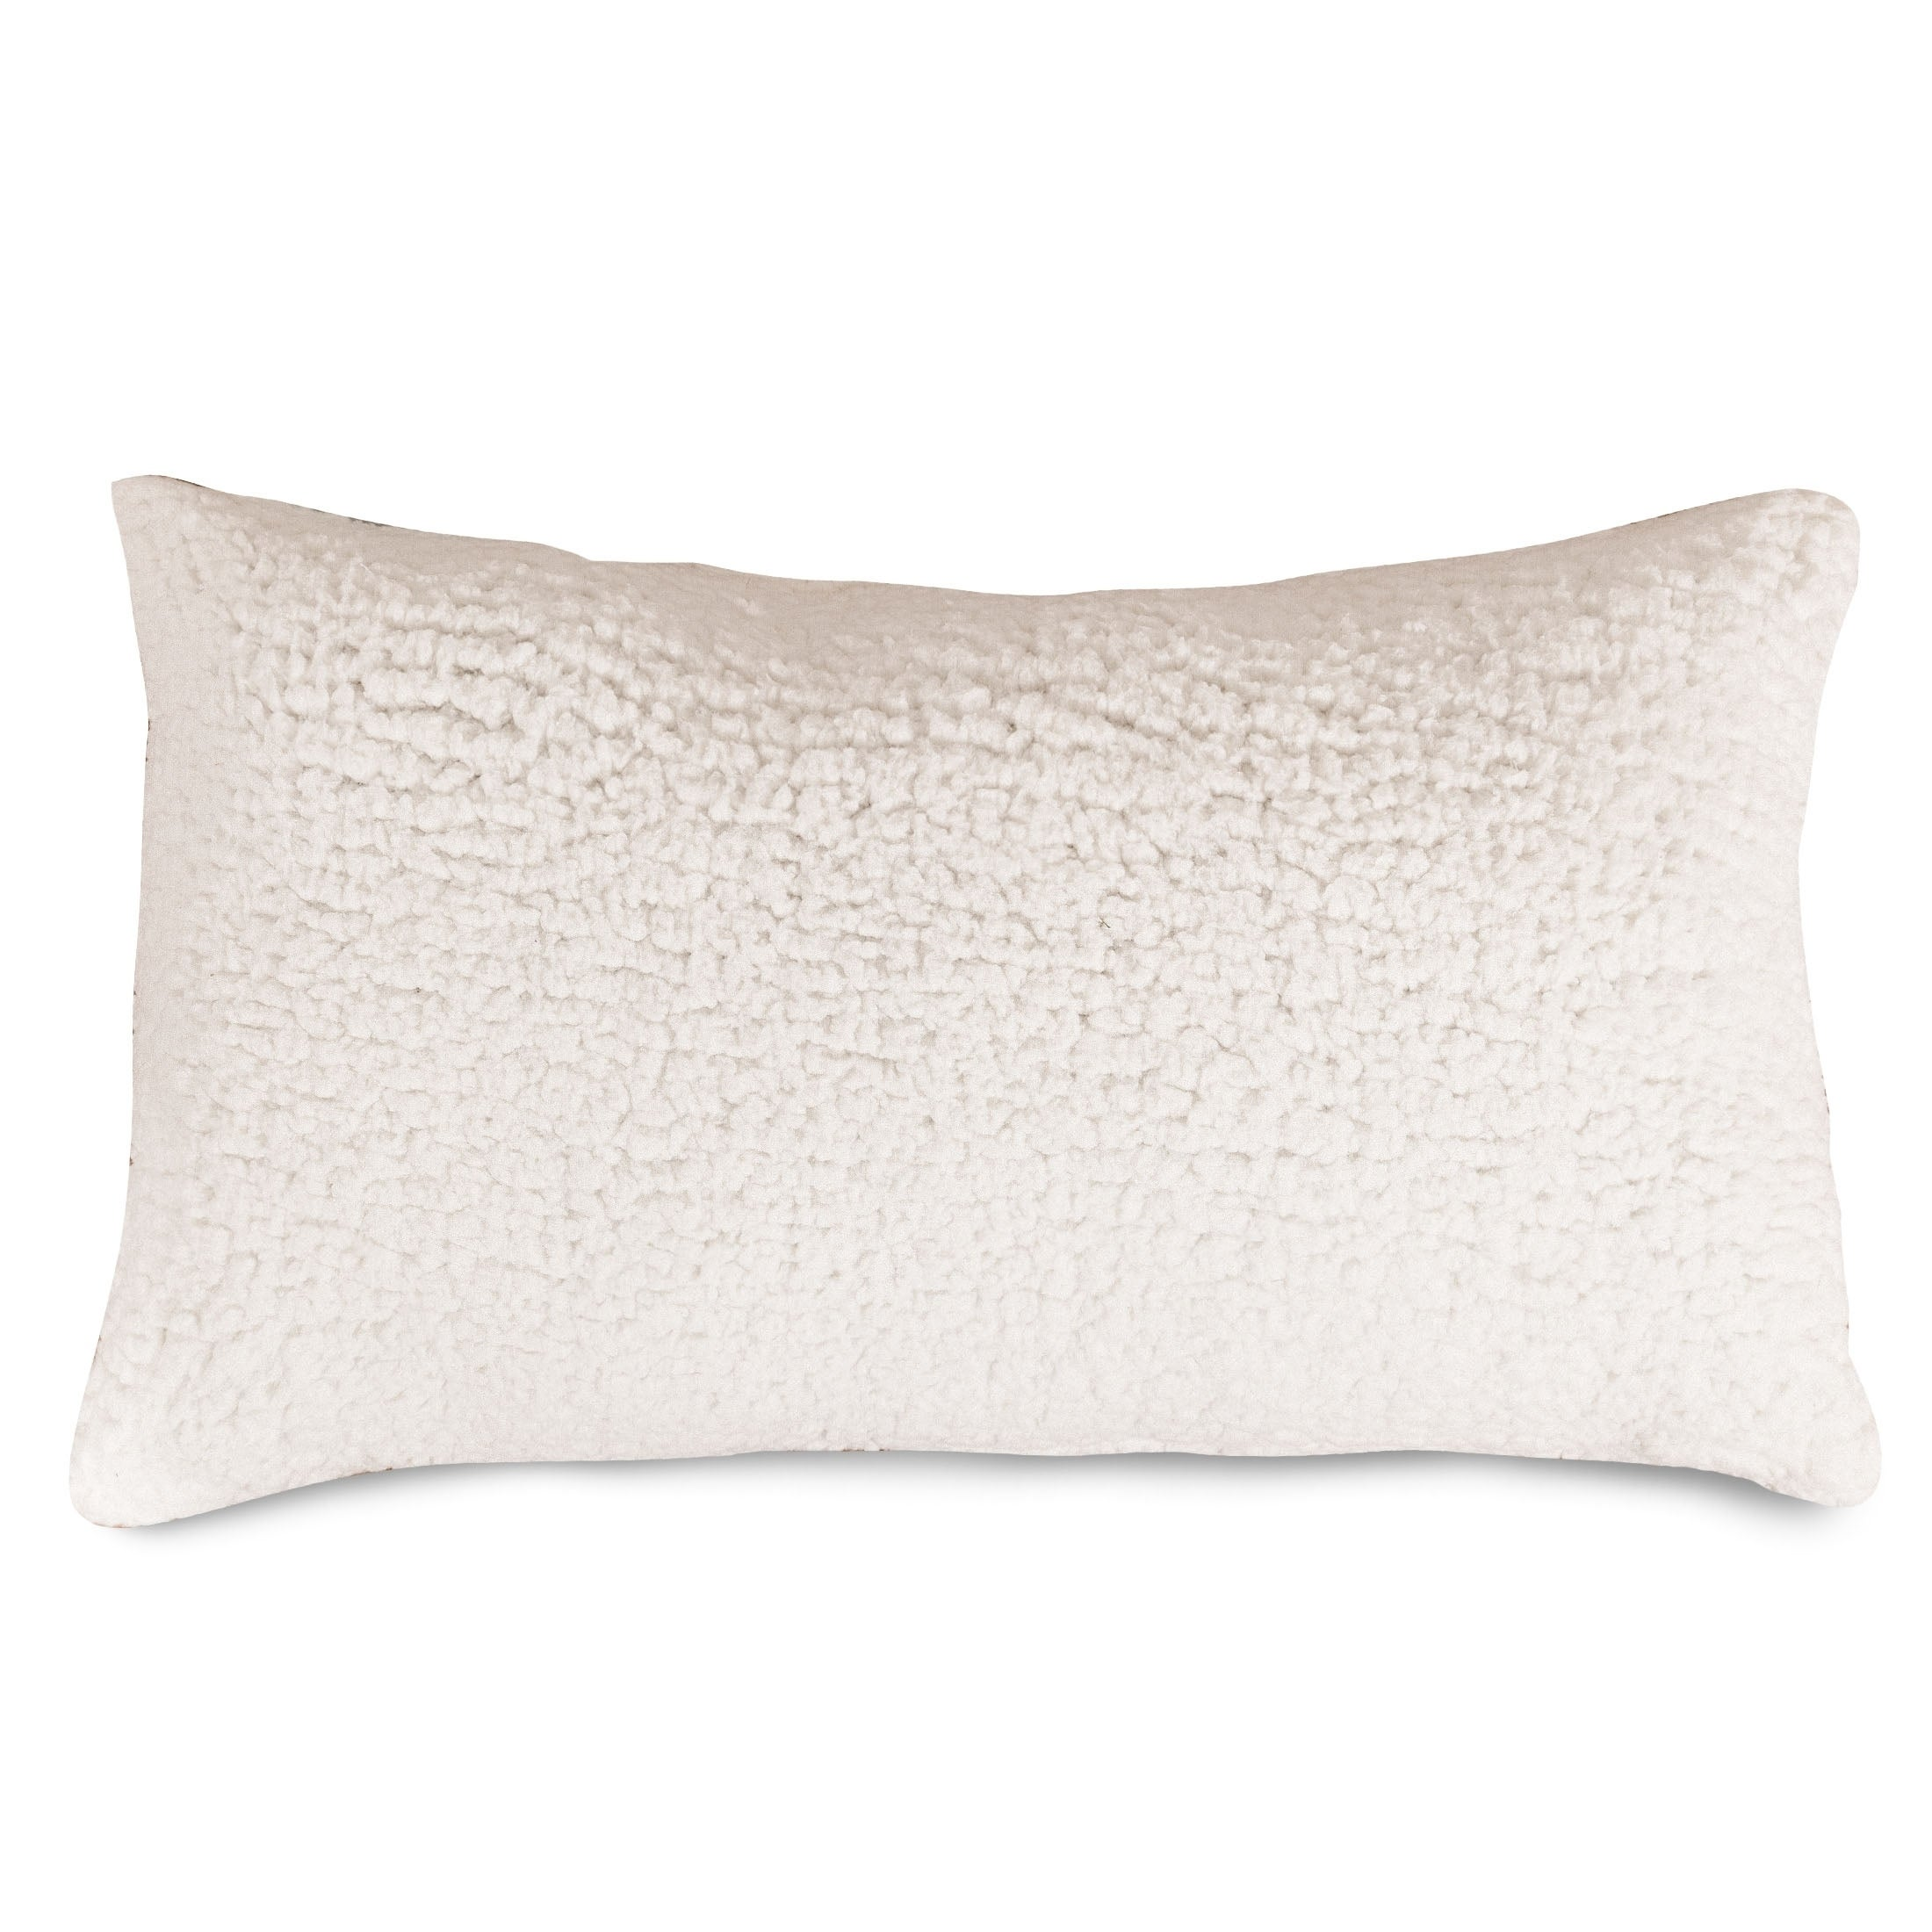 Majestic Home Goods Indoor Cream Sherpa Small Decorative Throw Pillow 20 X 12 Overstock 22277311